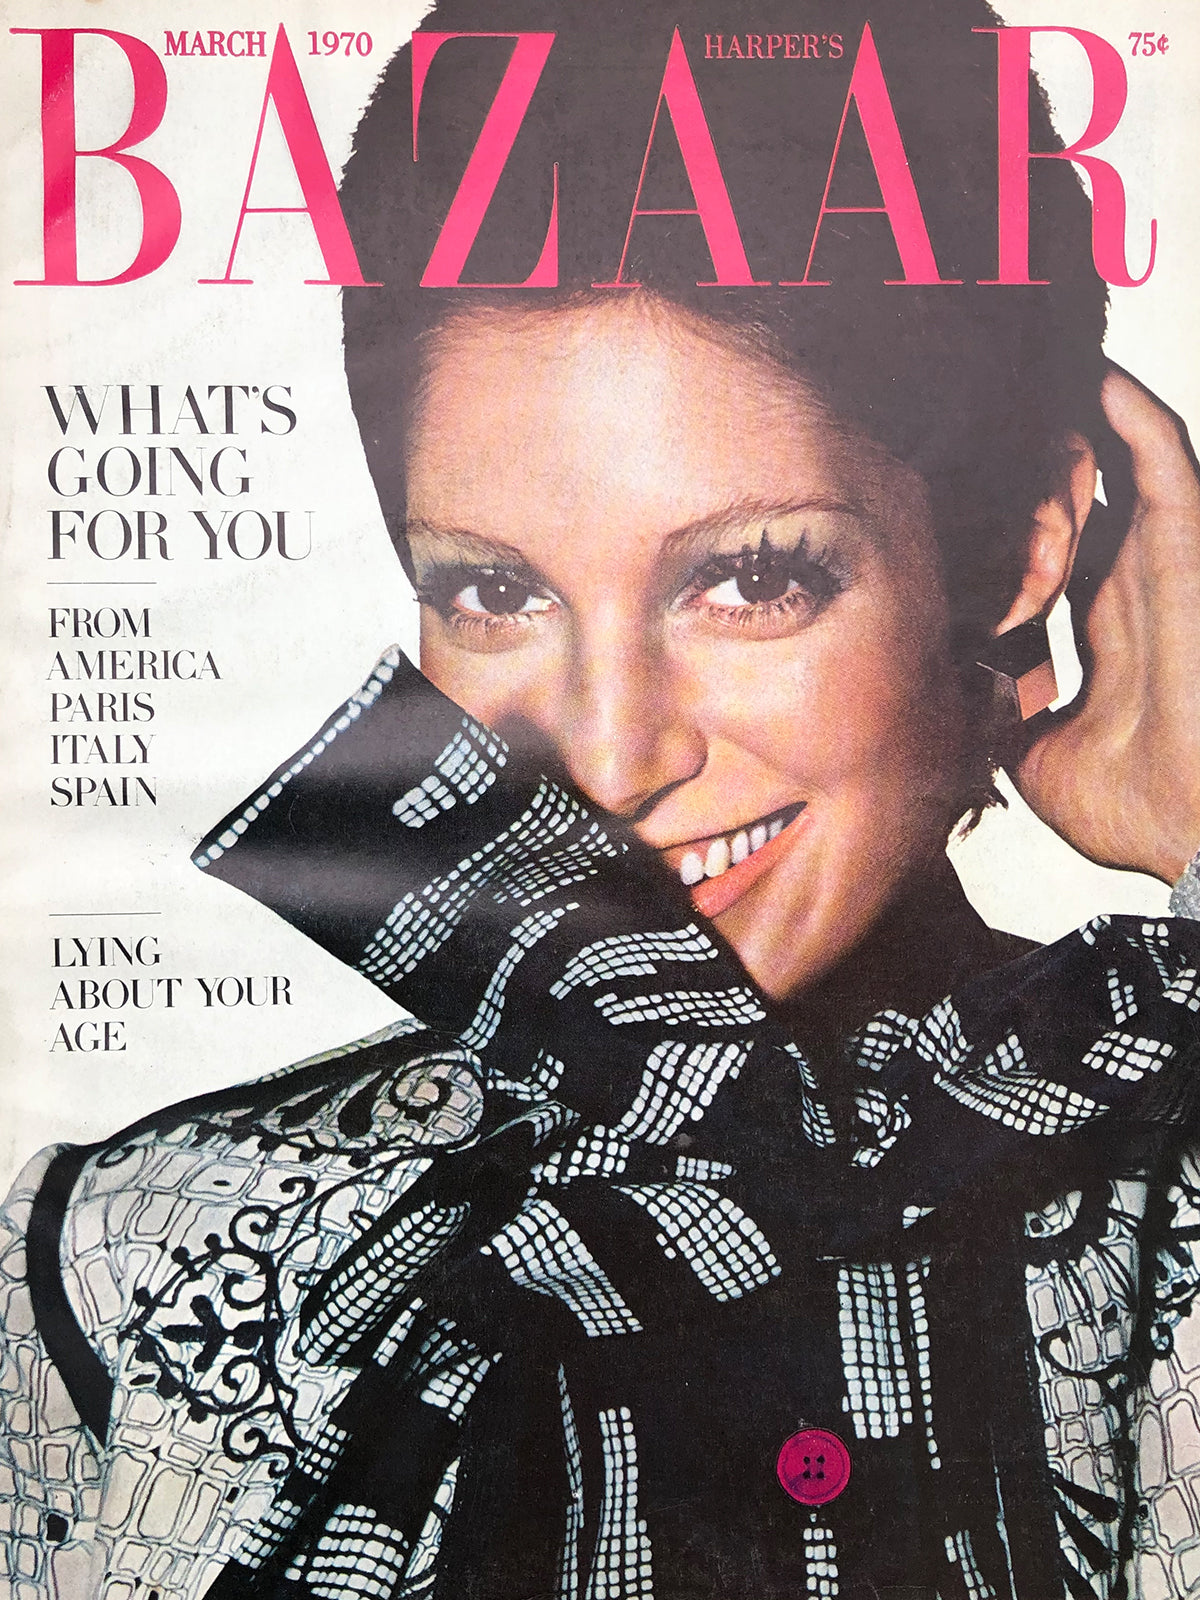 Archived - Harper's BAZAAR US March 1970